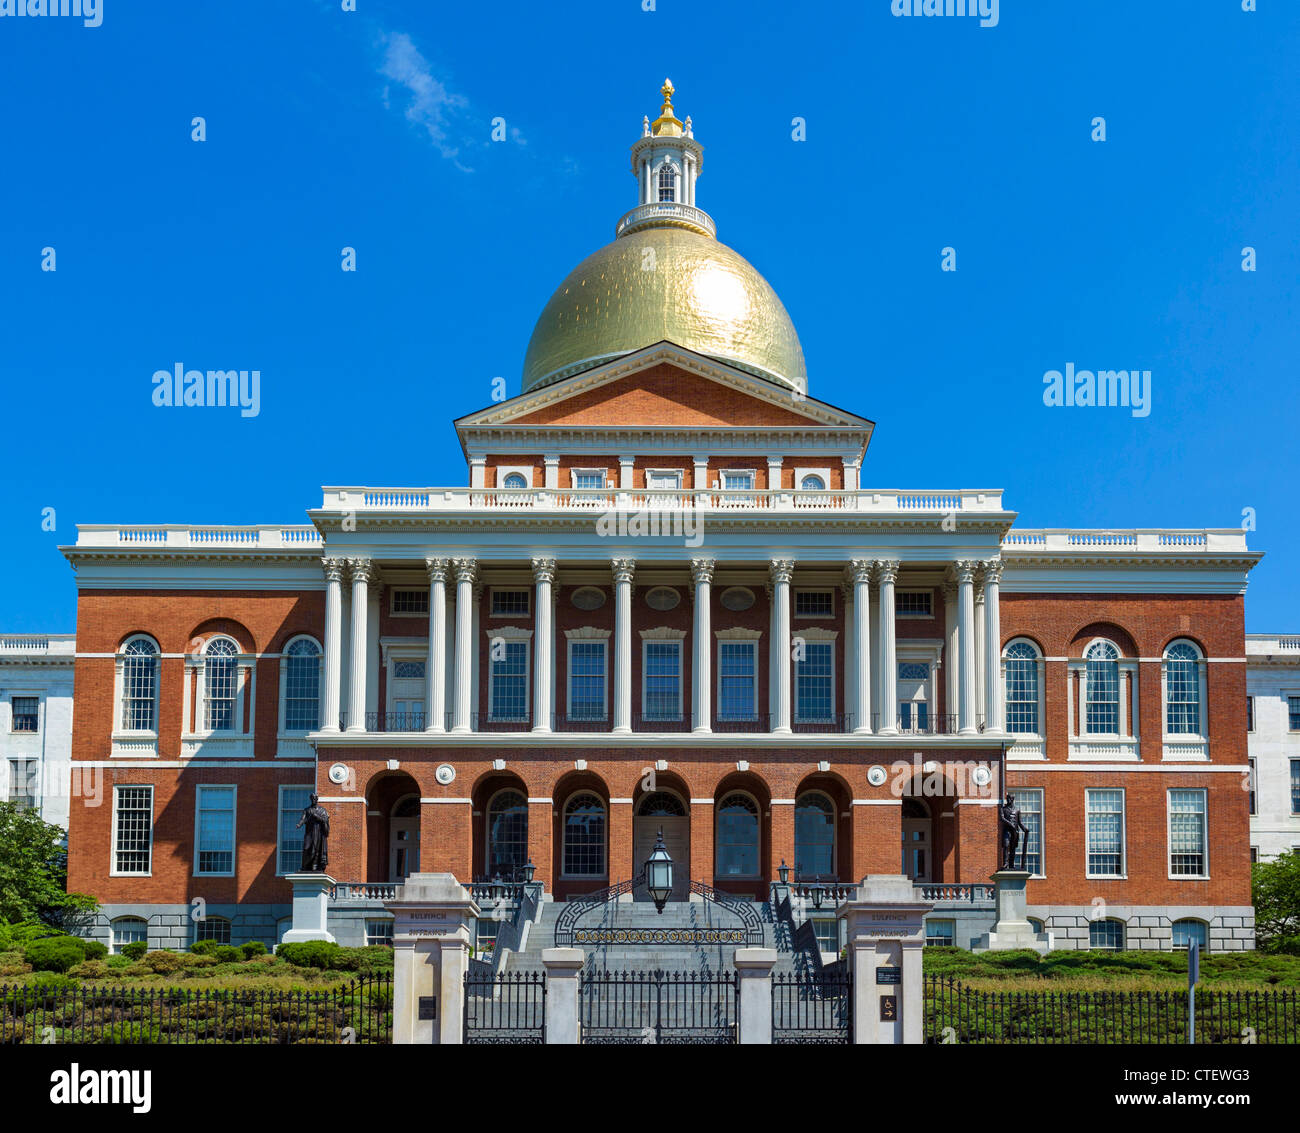 Casa del Estado de Massachusetts, Beacon Street, Boston, Massachusetts, EE.UU. Imagen De Stock